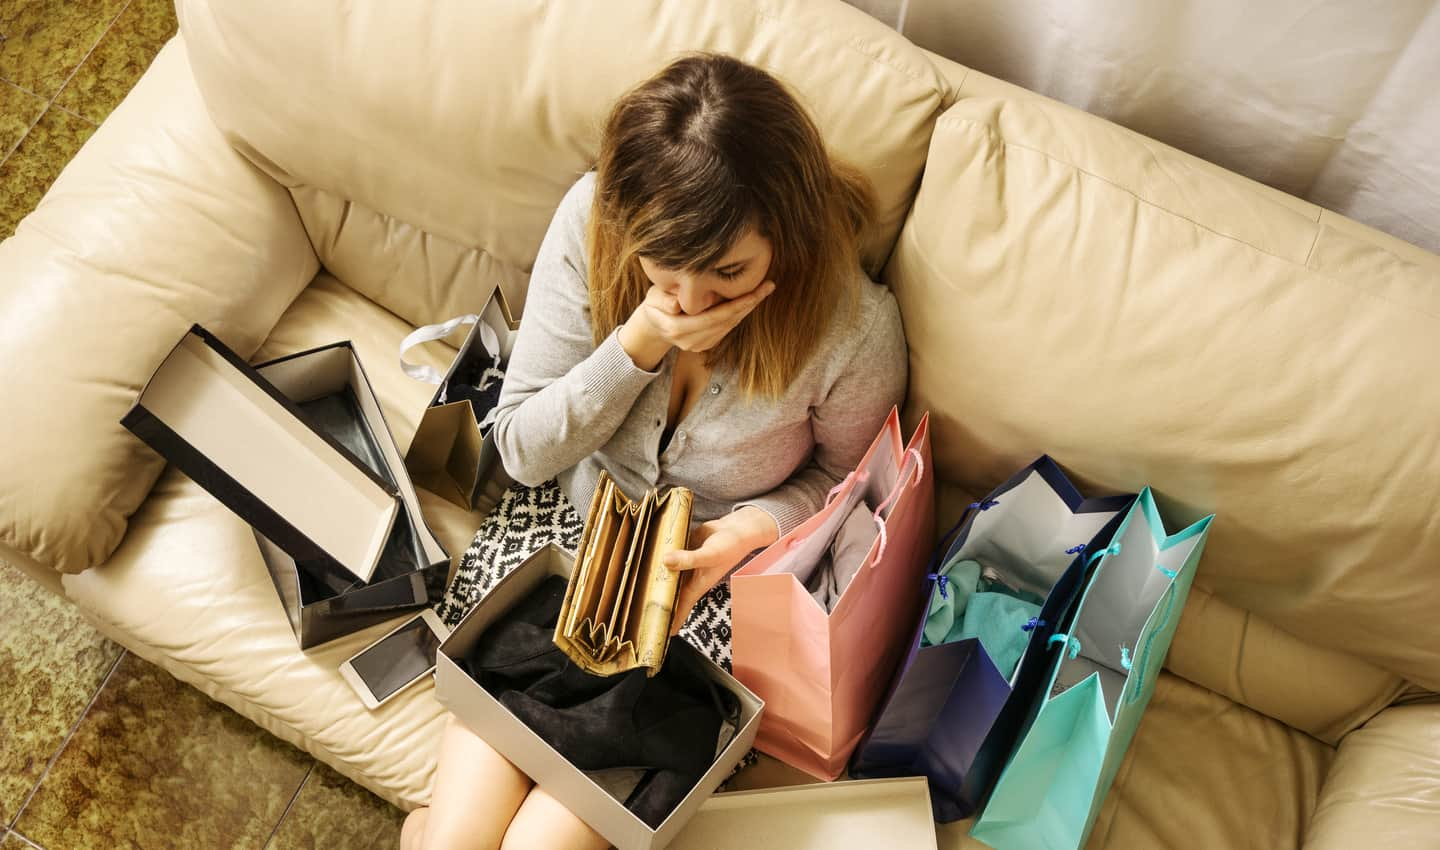 woman sitting on couch with shopping bags looking at her empty wallet